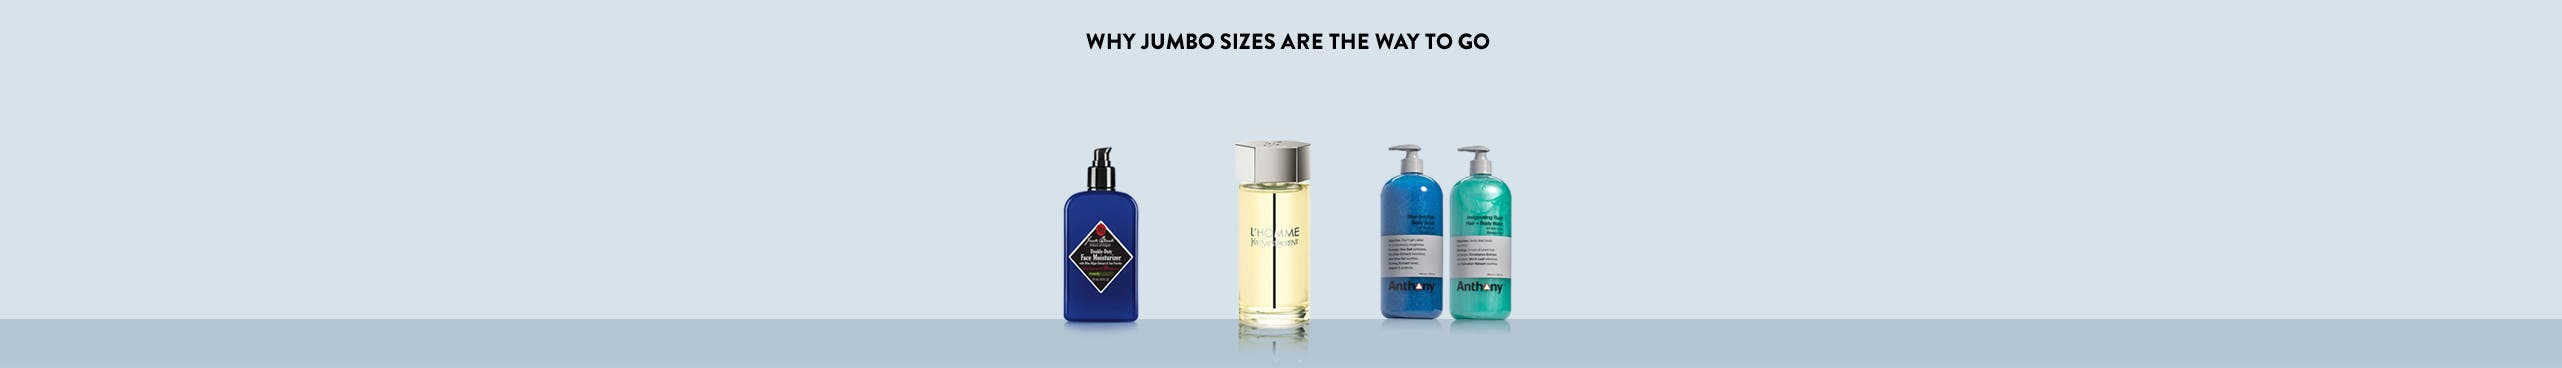 Why jumbo sizes are the way to go.